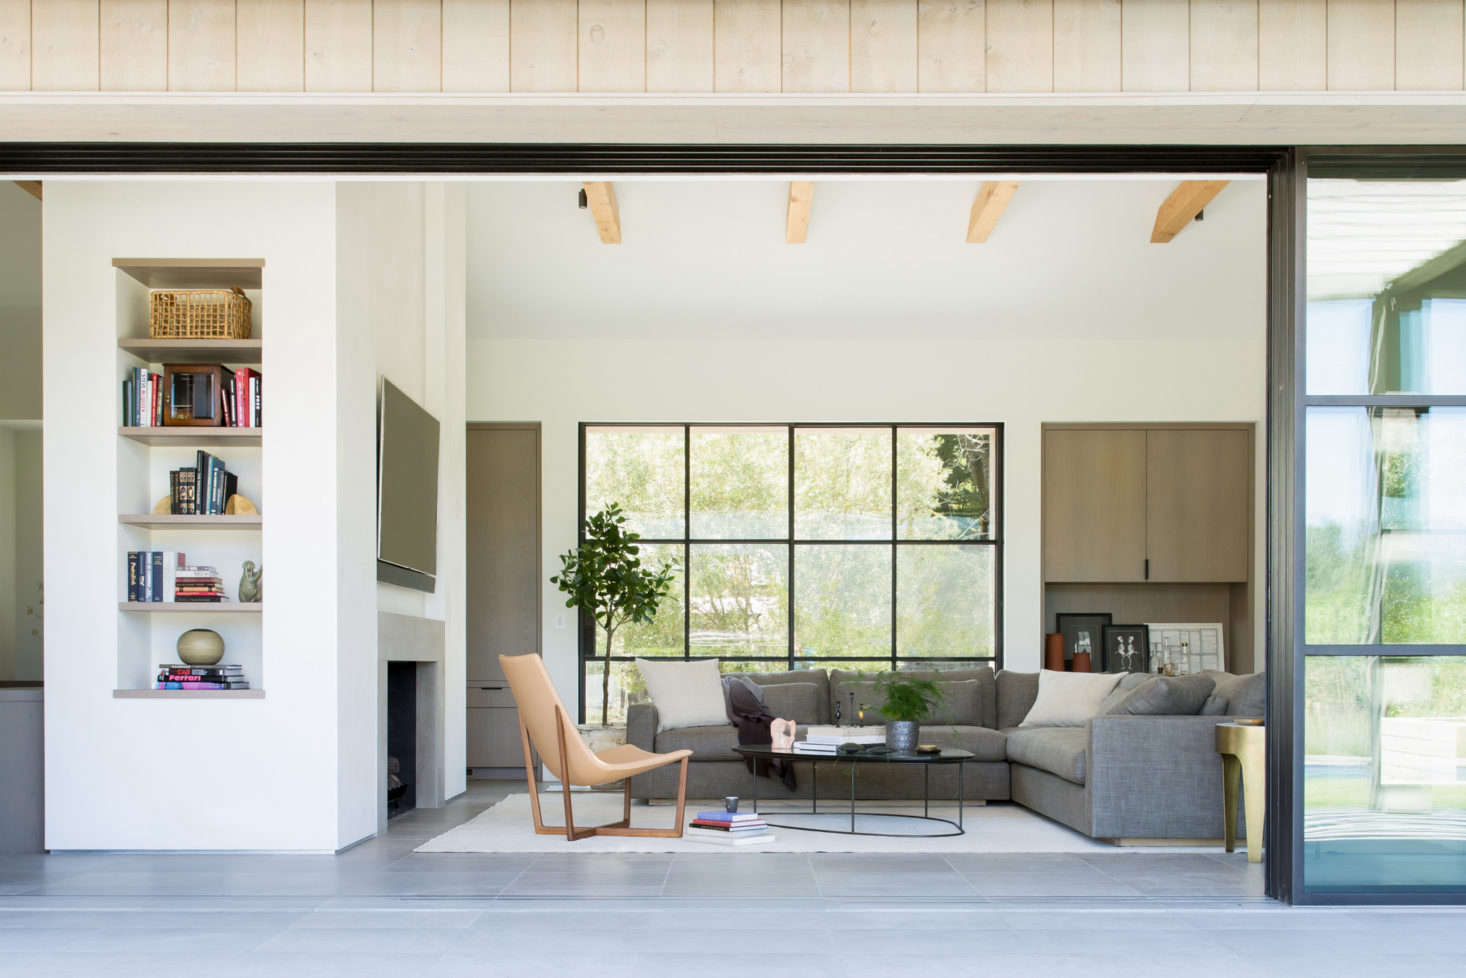 """Another living area with low-slung furniture and natural wood beams. """"The organic and wood elements are casual, tactile, and intimate and serve to underscore a sense of place,"""" Geremia says."""